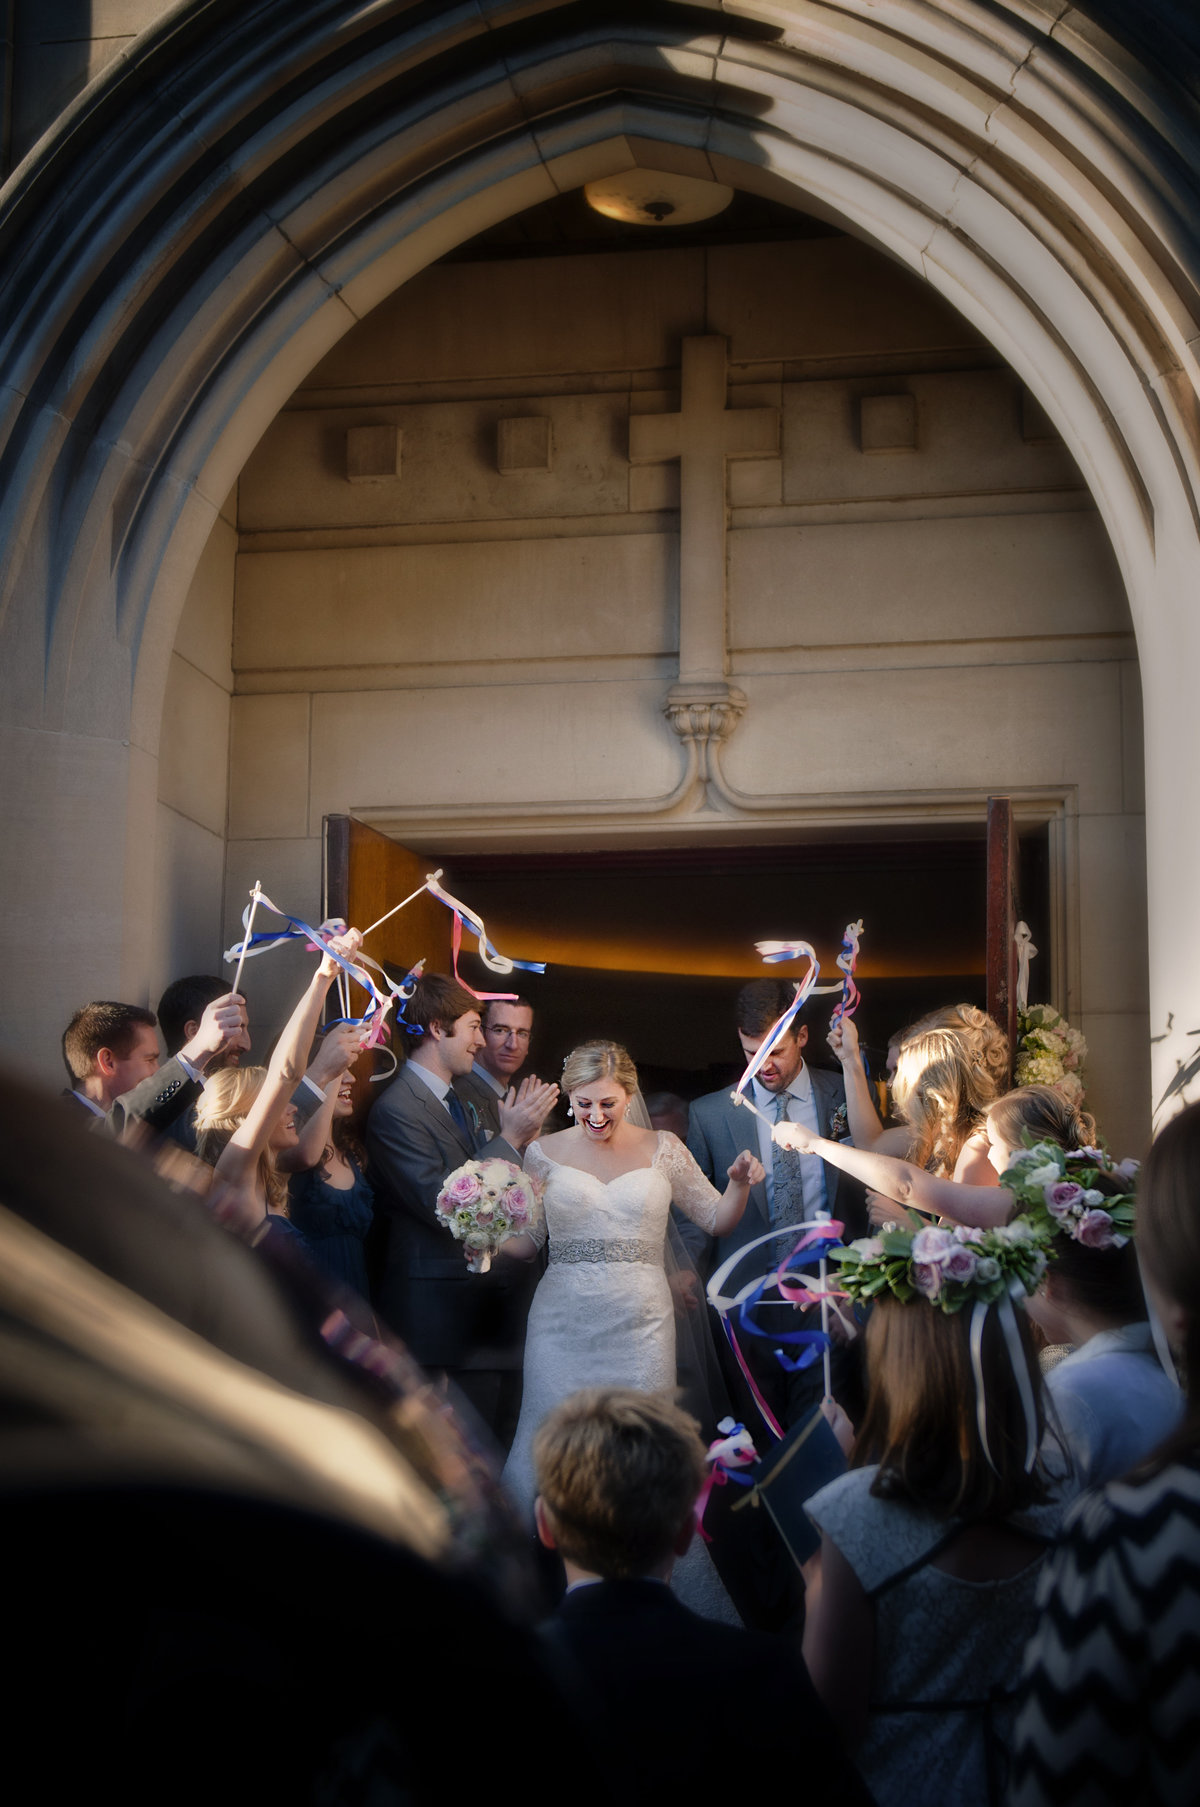 Wedding Bride and Groom Exiting Church after Wedding Ceremony, Washington DCExit, Church Wedding, DC Wedding Photographer